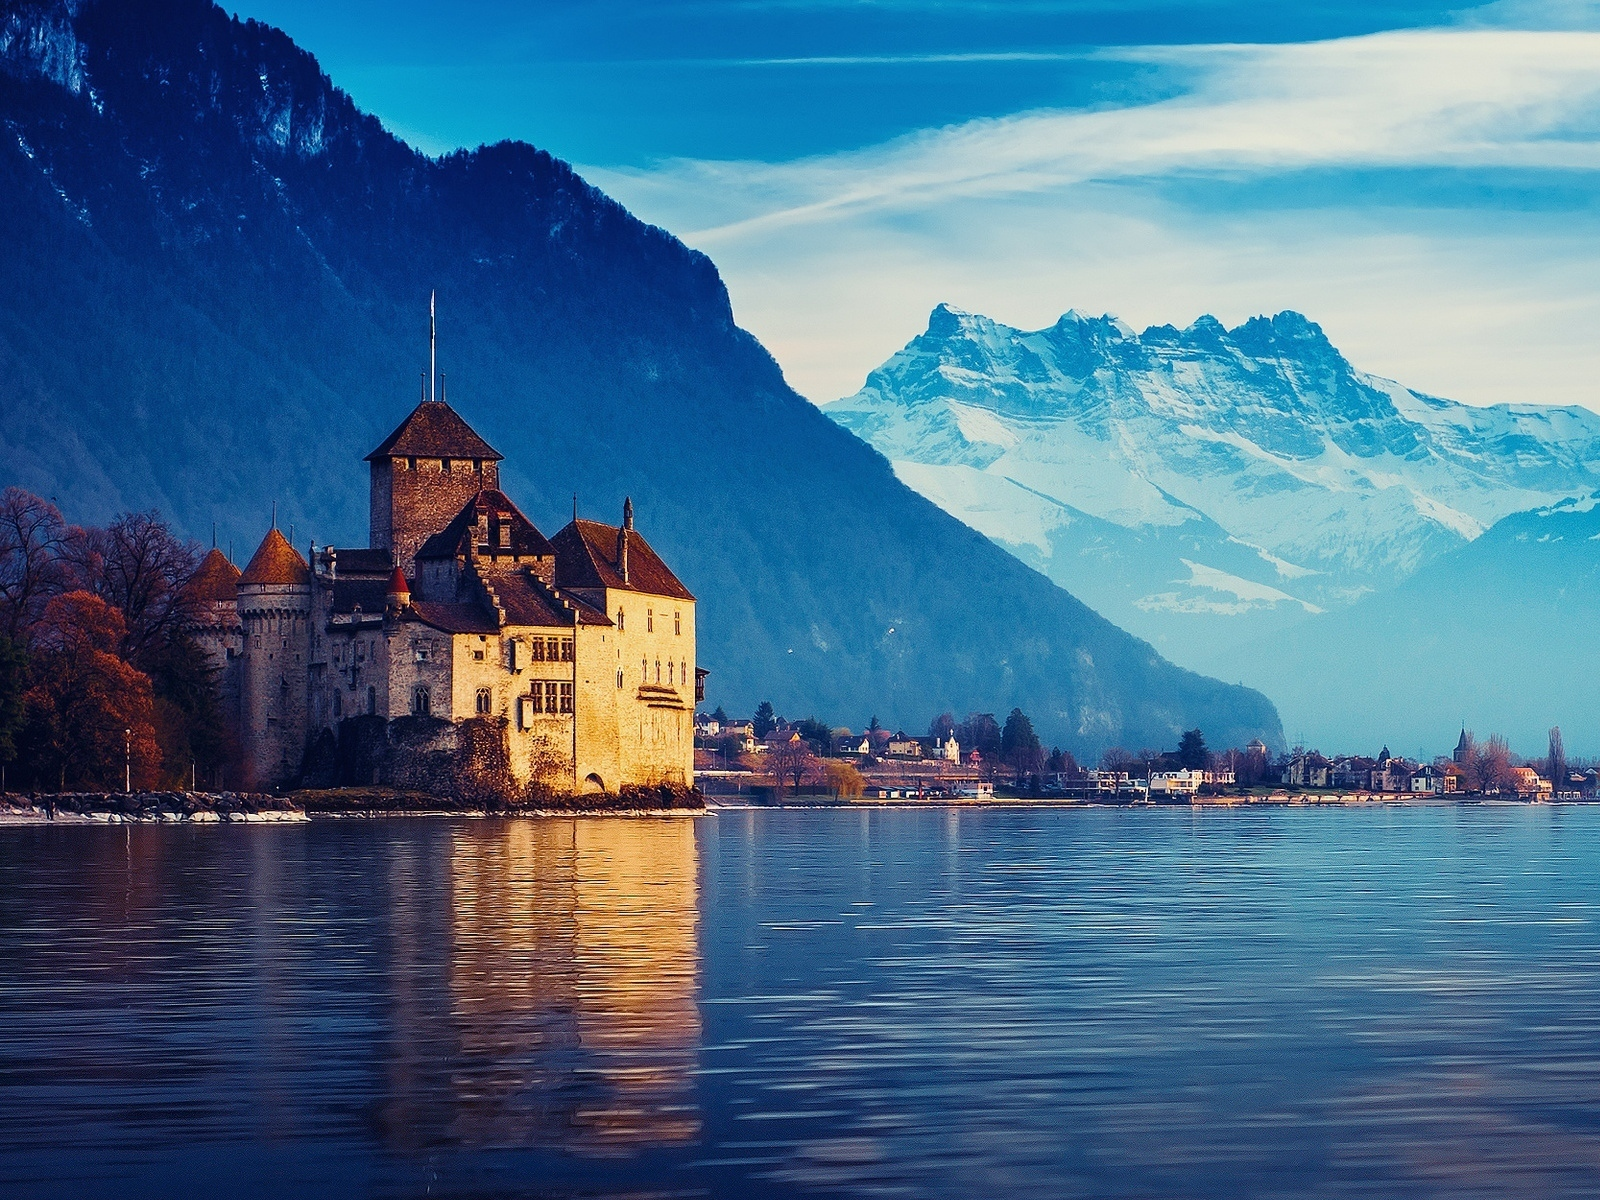 Picturesque lake and a castle